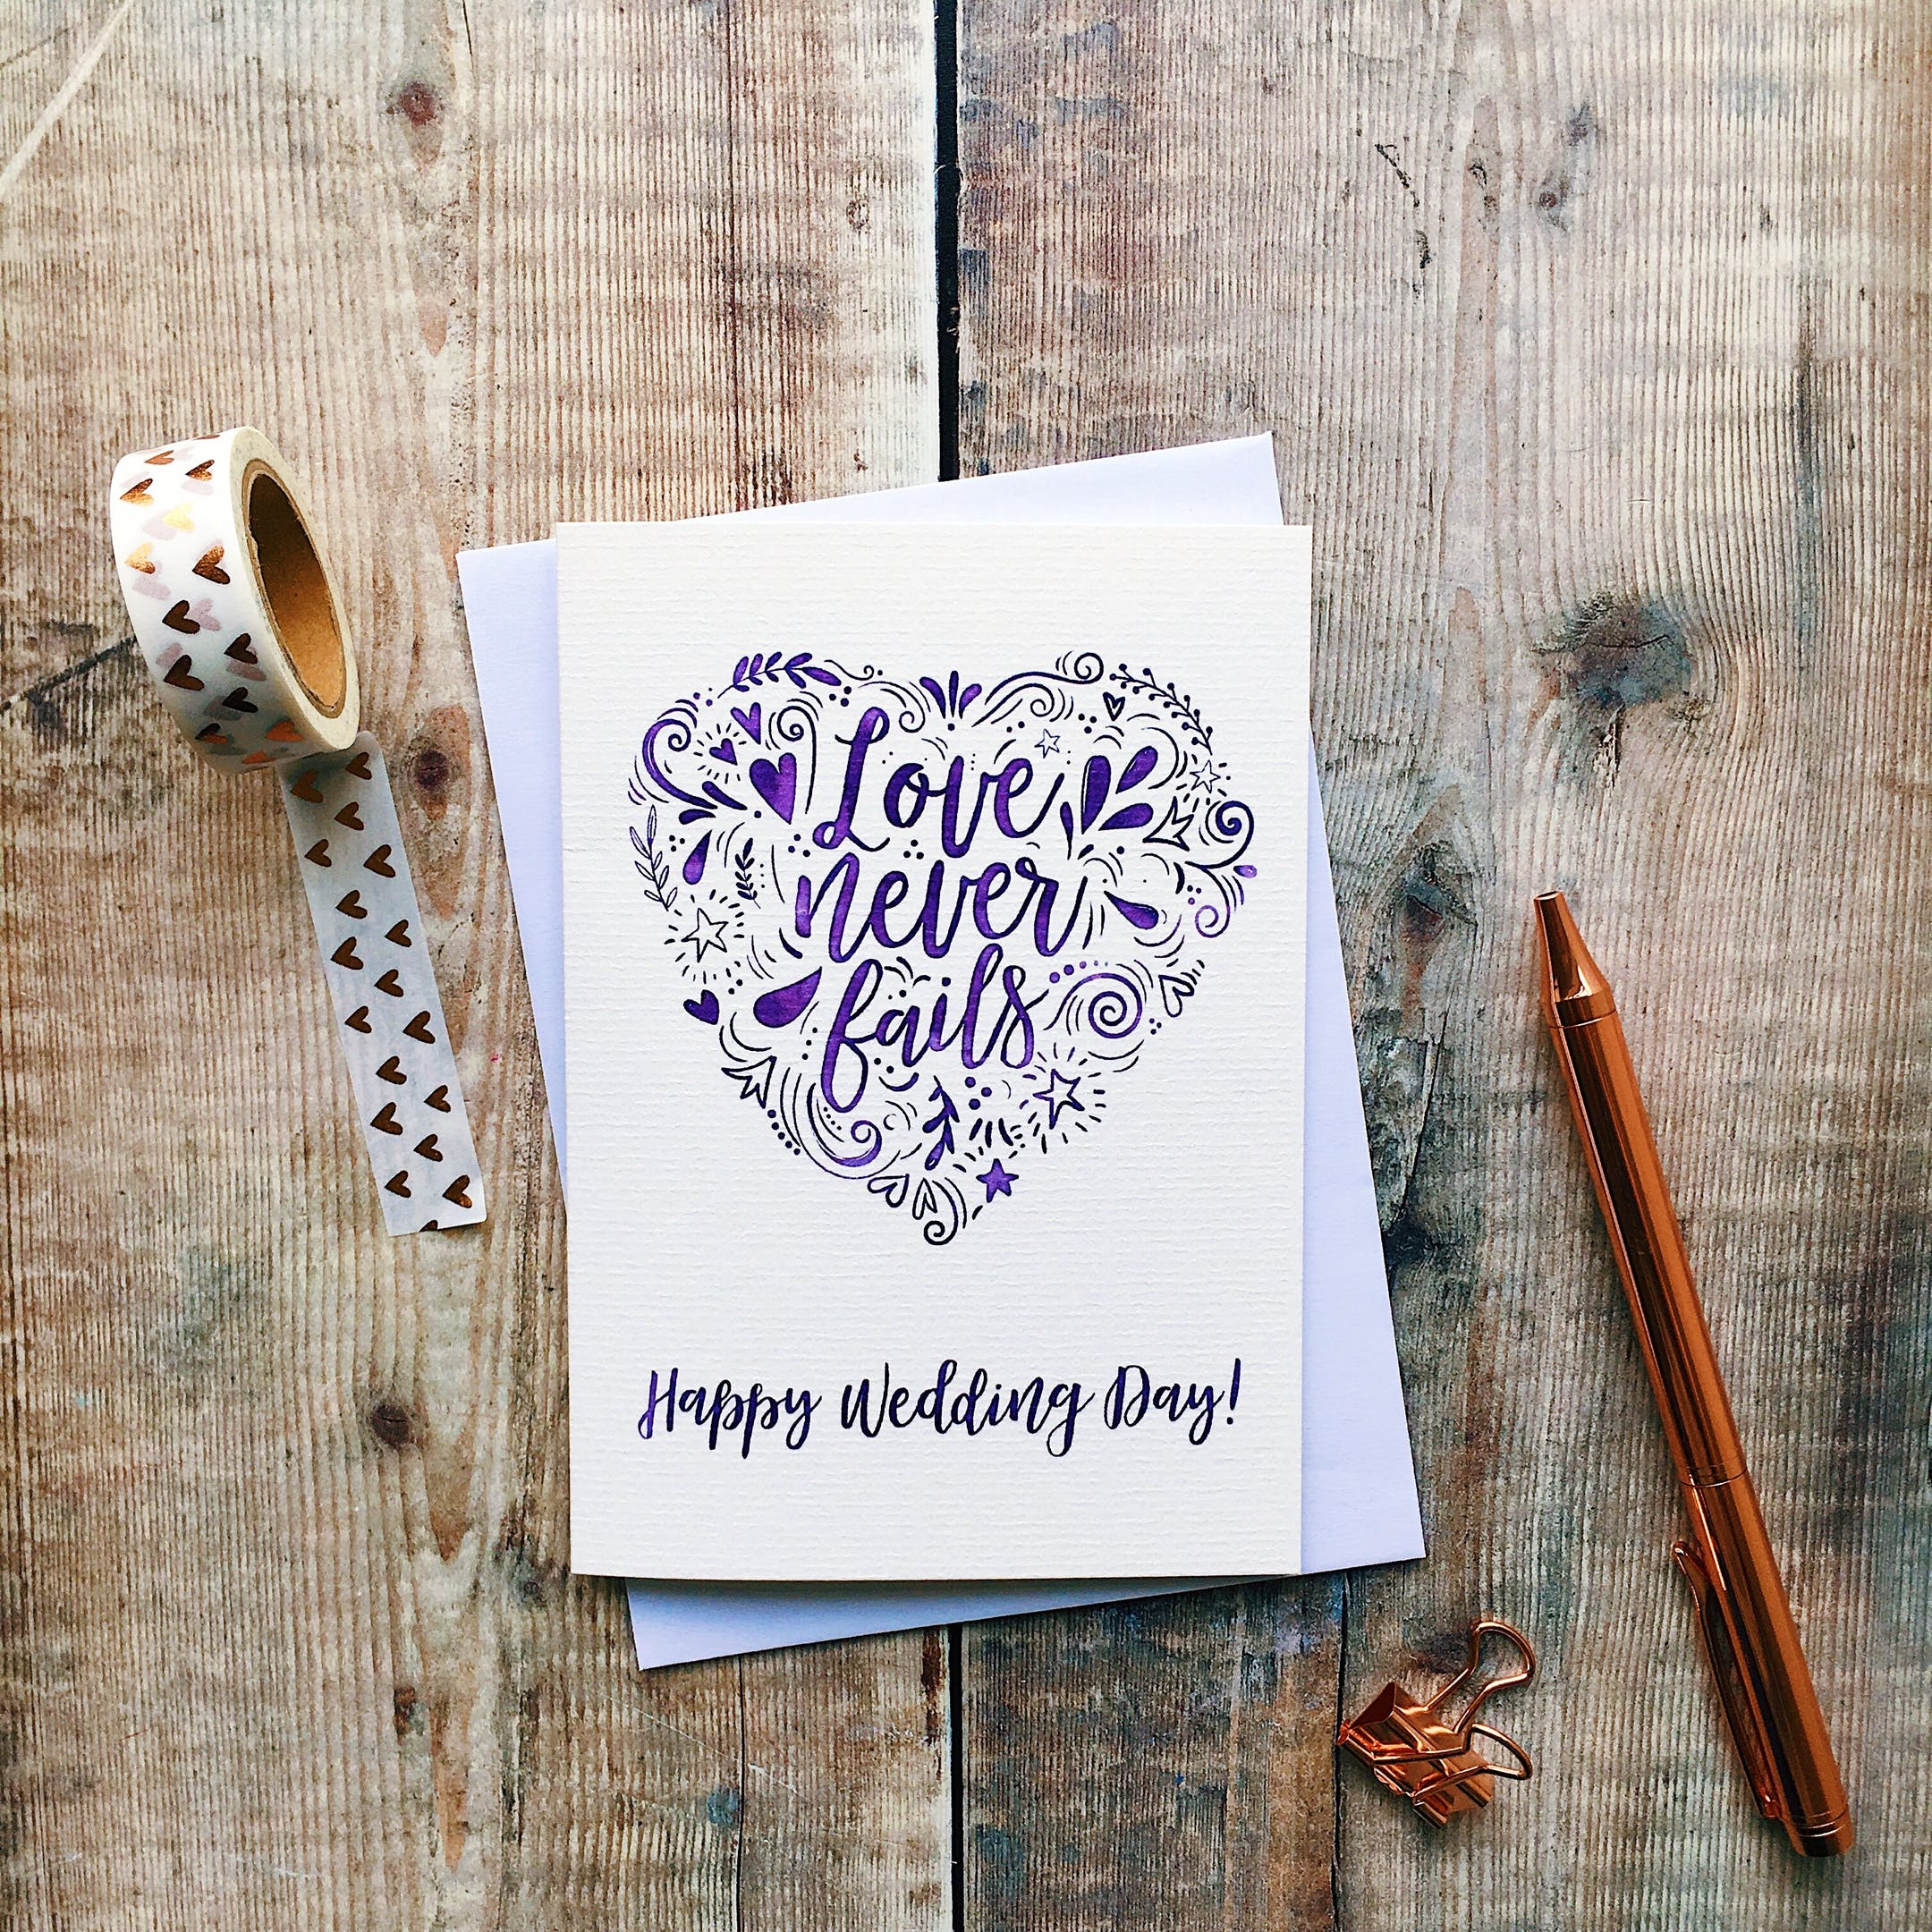 Izzy and Pop - Happy Wedding Day Card - Love Never Fails - 1 Corinthians 13